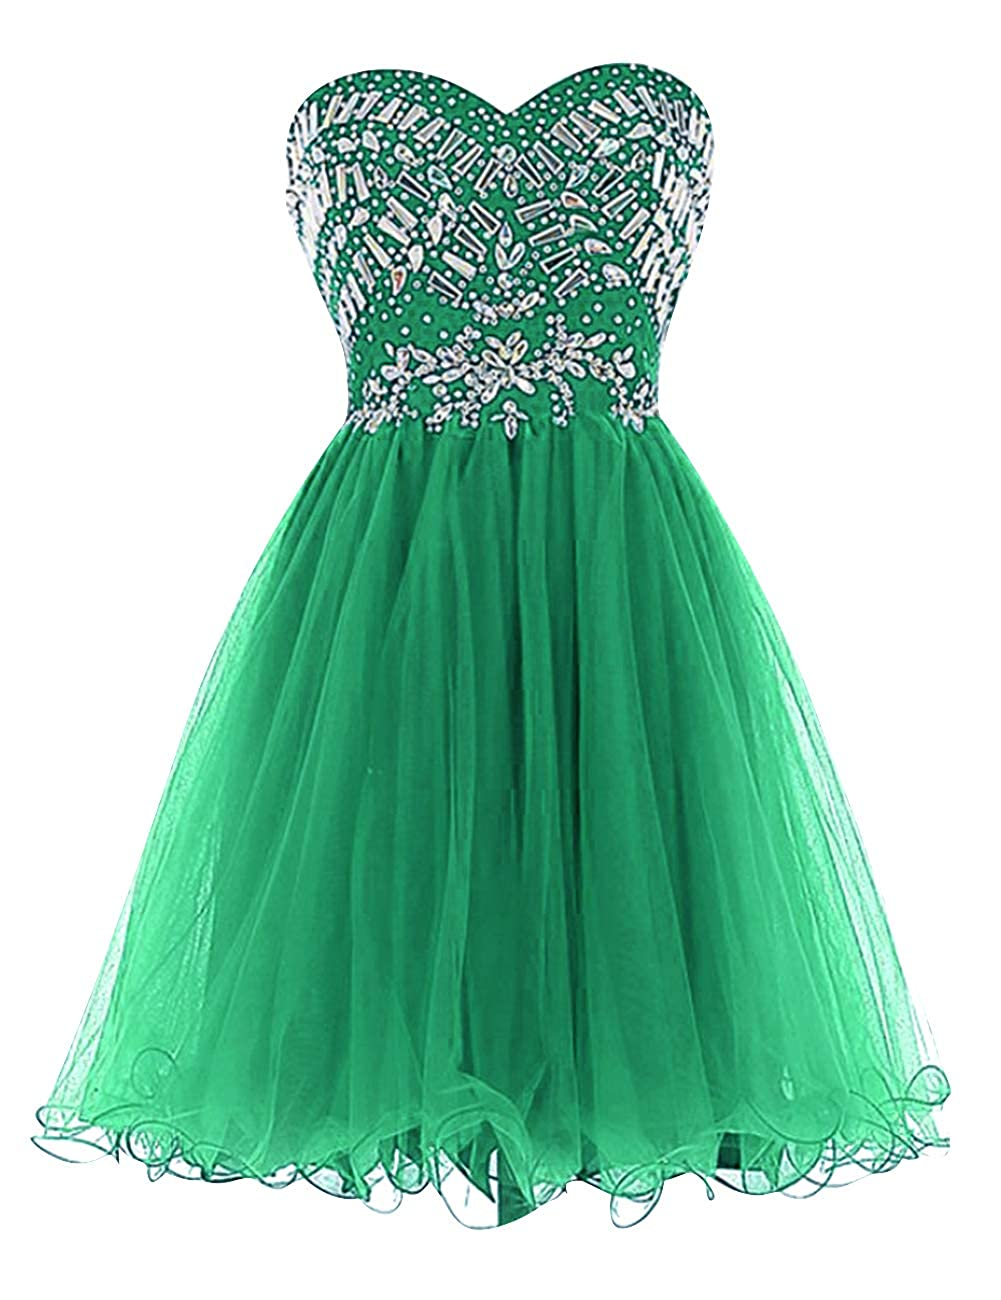 Emerld Uther Sweetheart Cocktail Dresses Tulle Beading Knee Length Homecoming Prom Dress